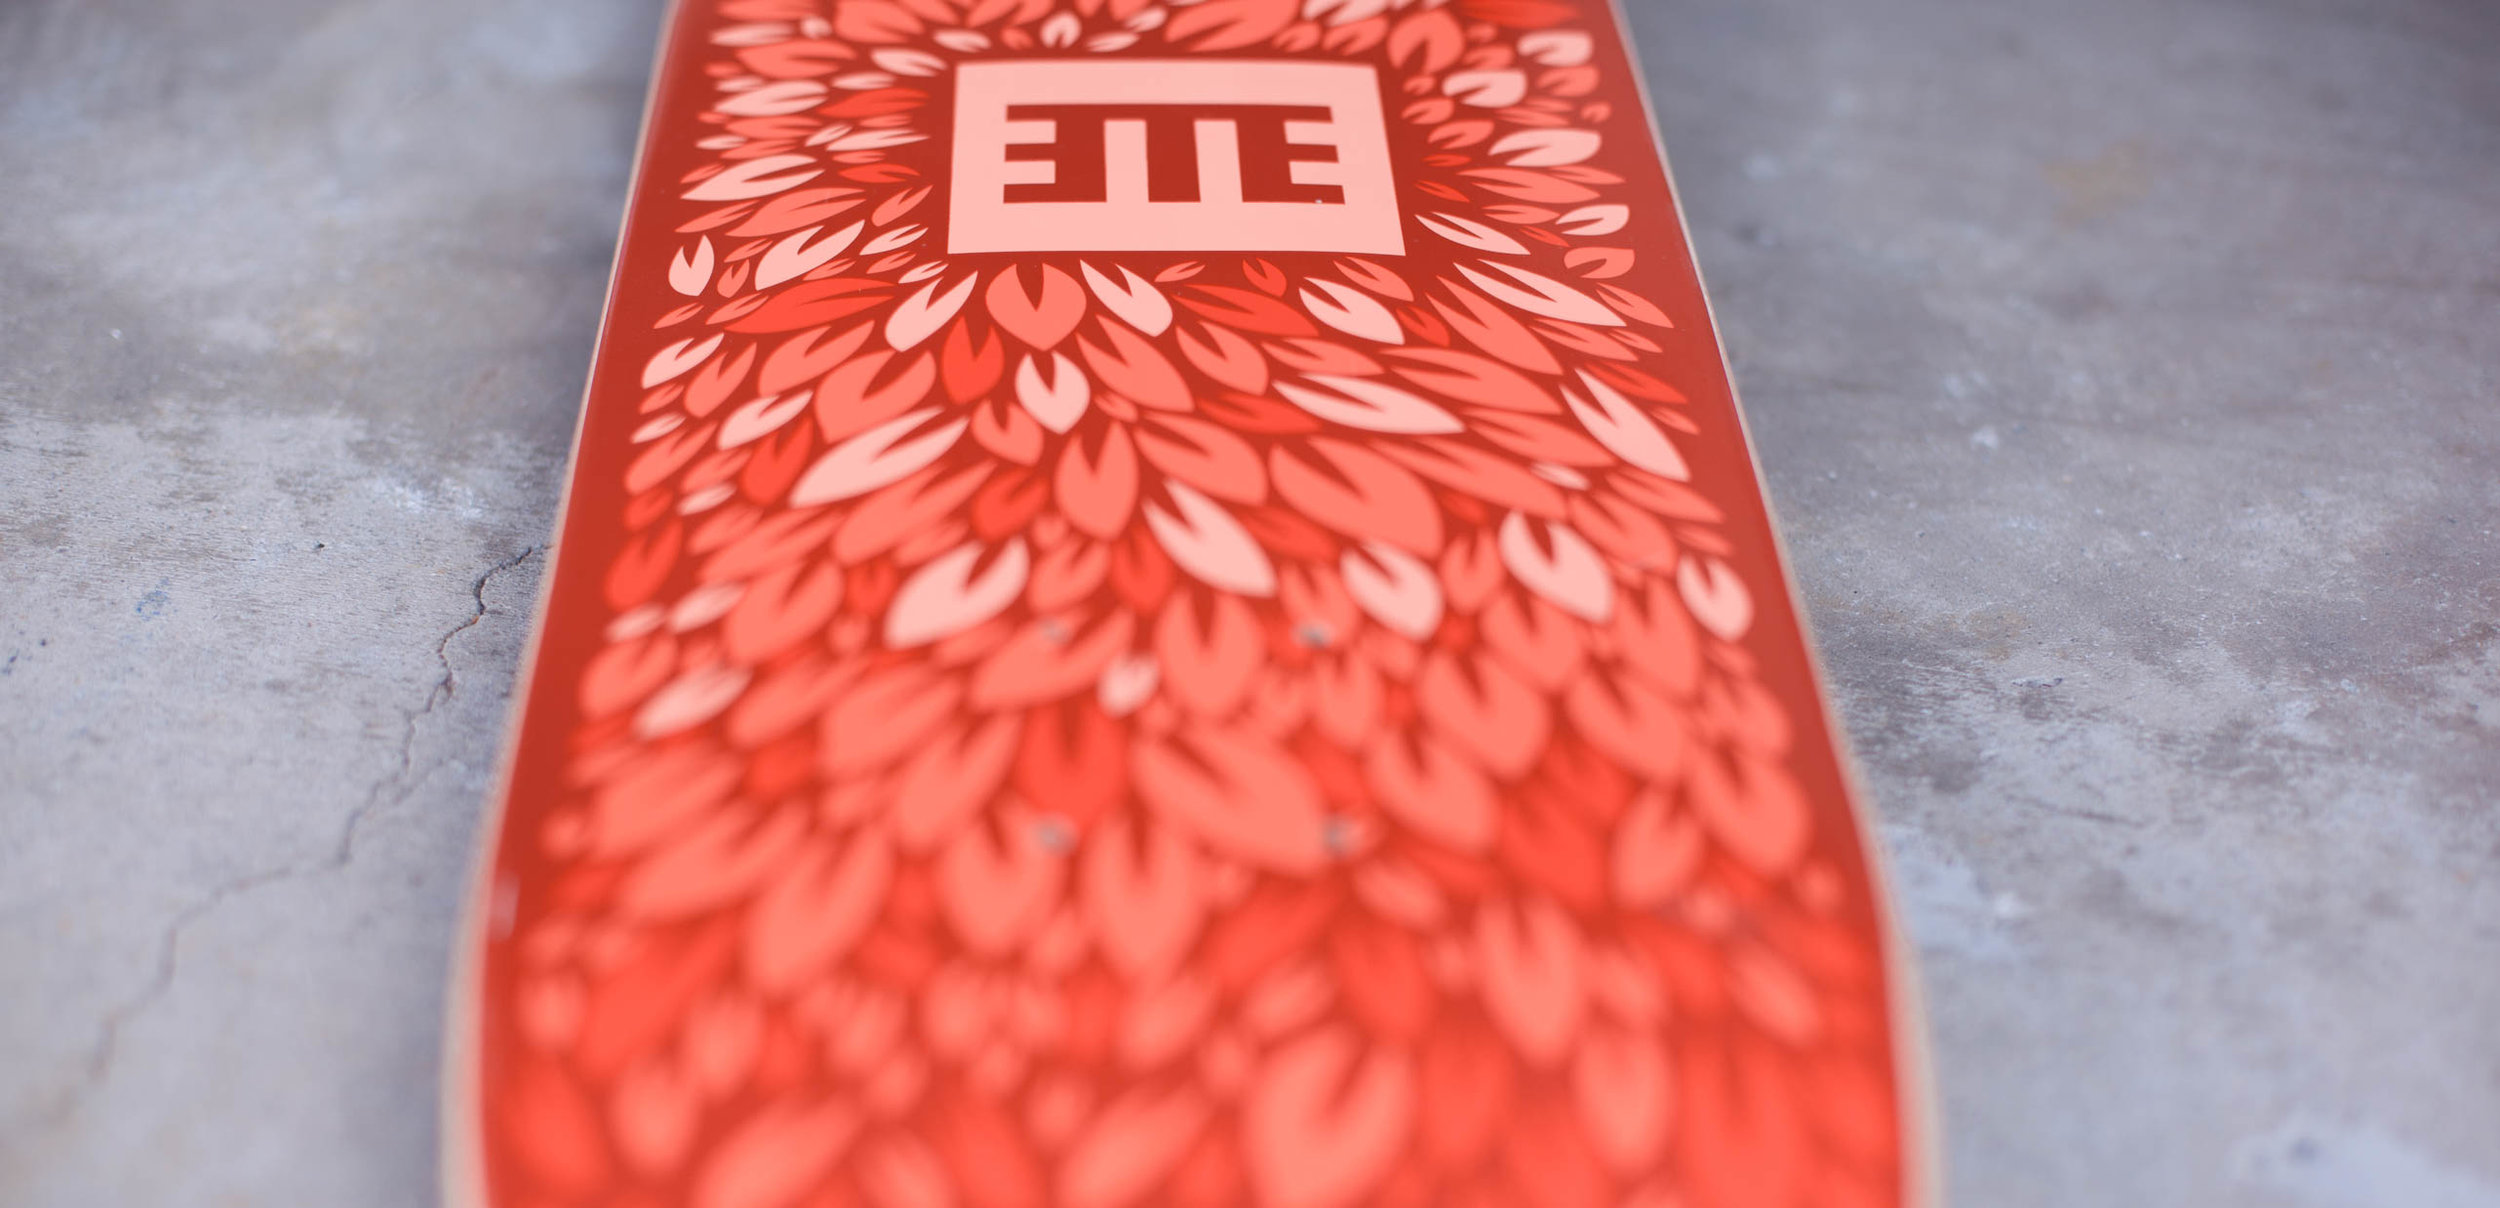 odd-soul-website-portfolio-skate-graphic-design-making-trees-cool-red-illustration-eternal-skateboards-photo-3.jpg